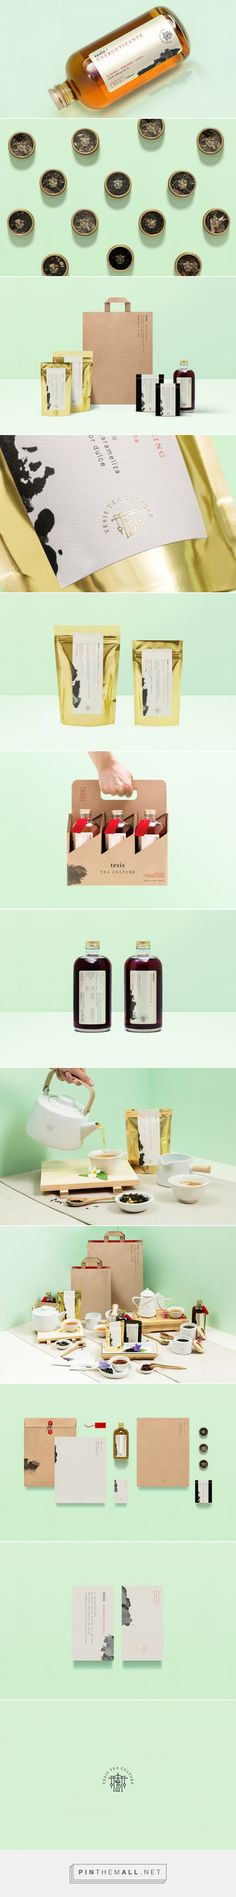 Tesis Tea by Anagrama (Mexico) #packaging